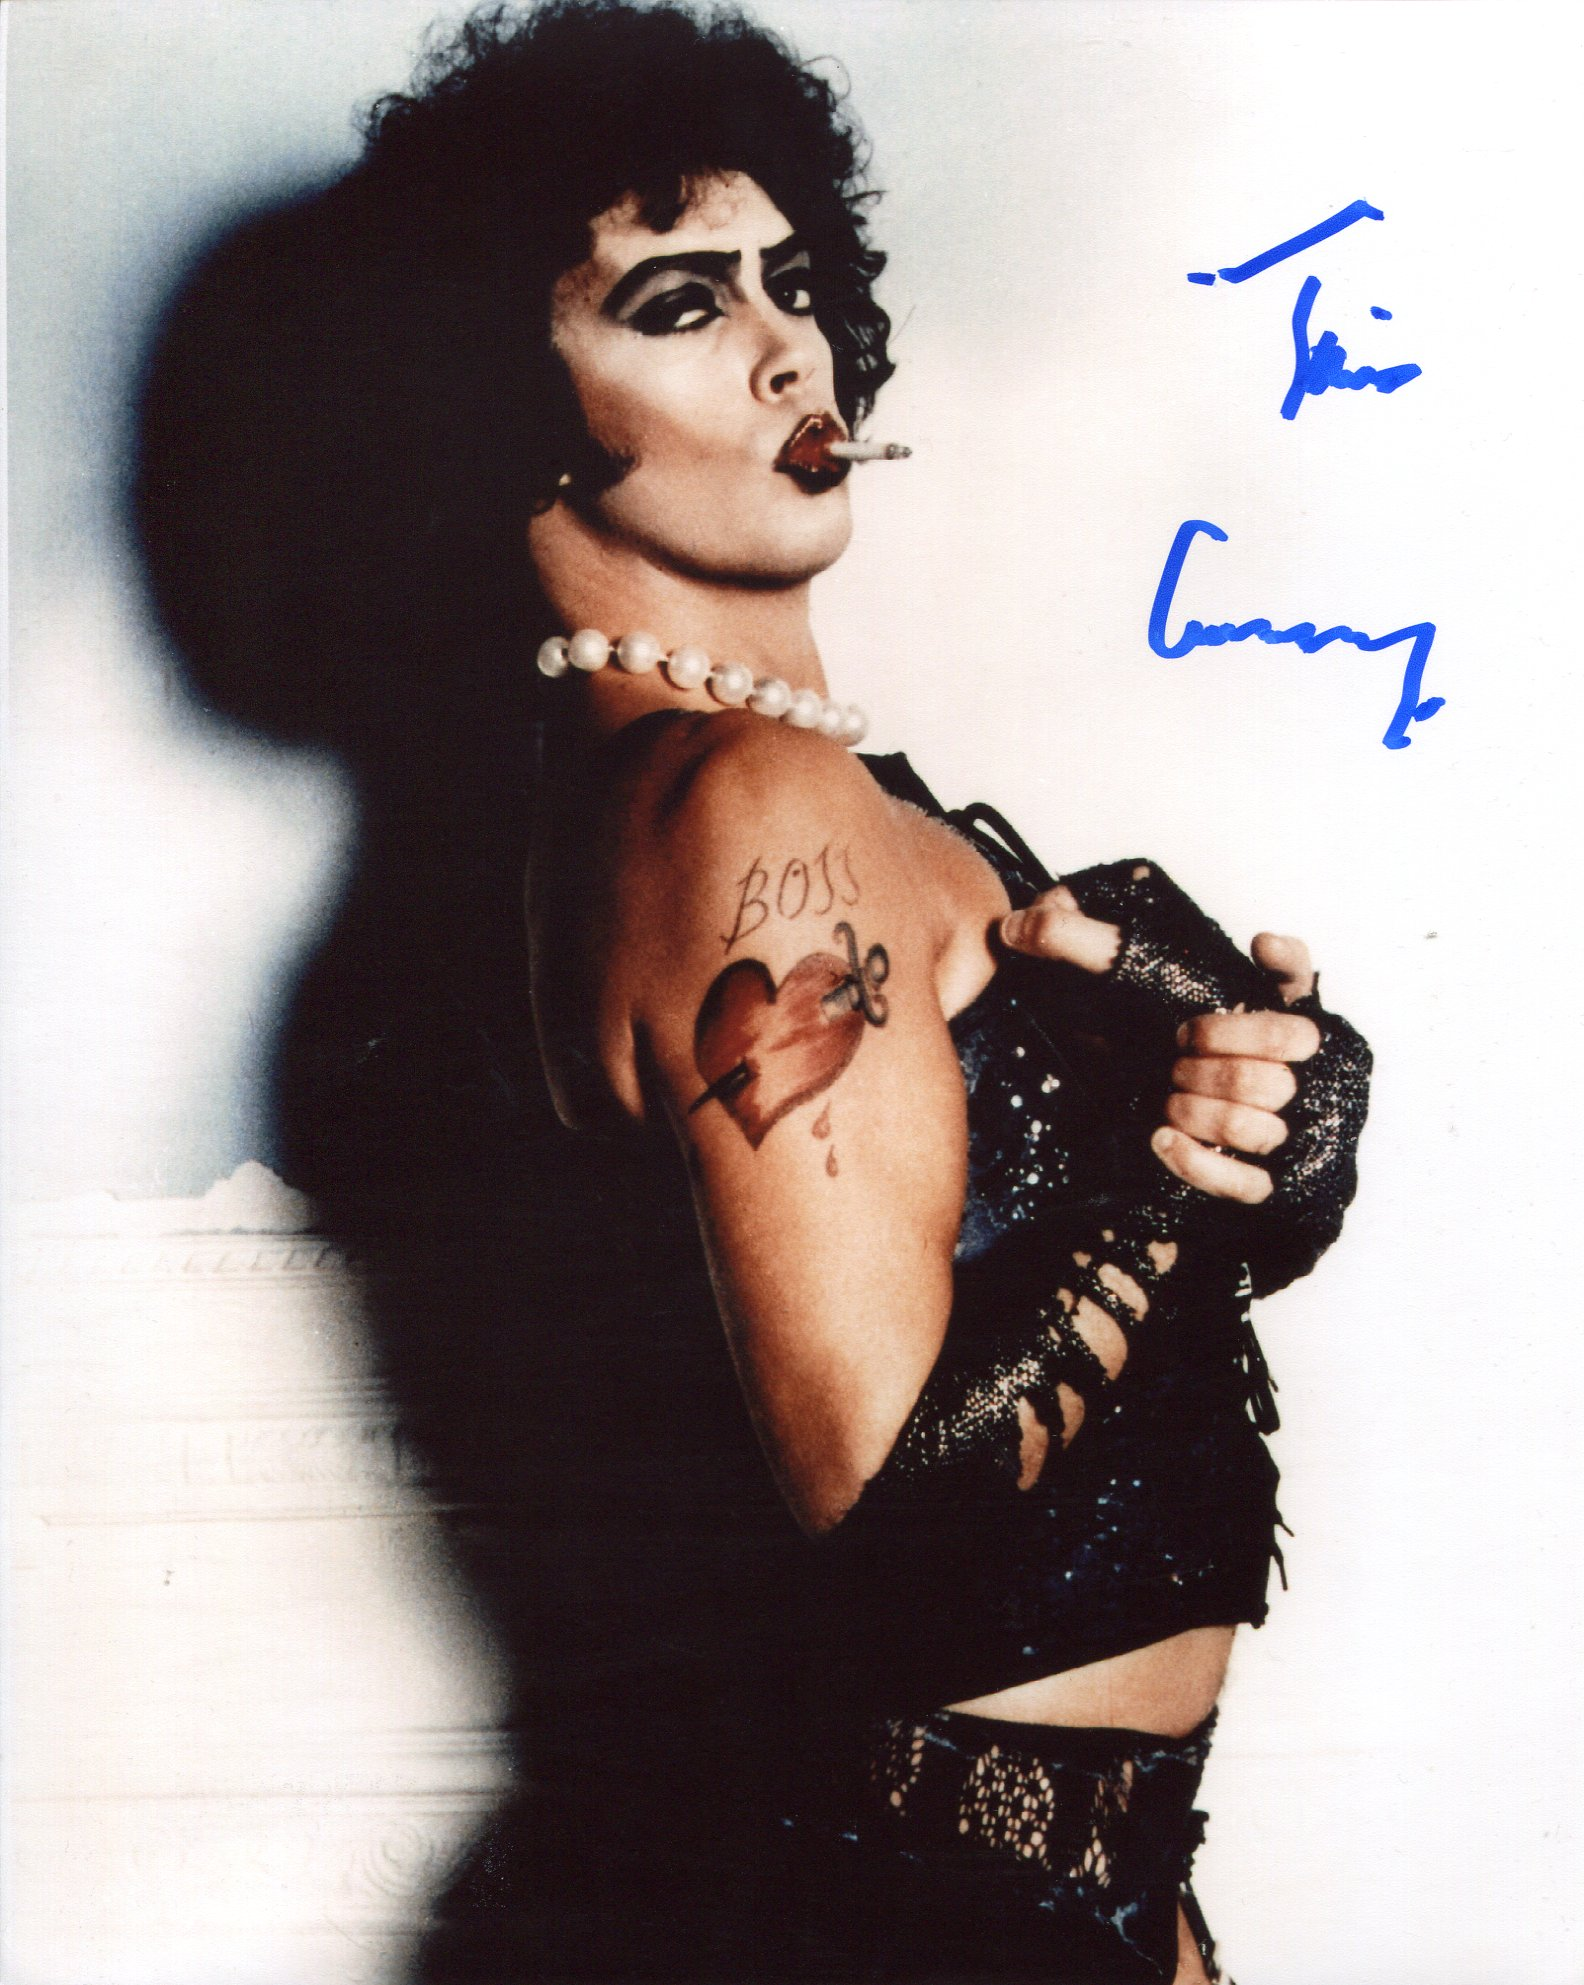 Tim Curry, 8x10 Rocky Horror photo signed by actor Tim Curry. Good condition. All autographs come